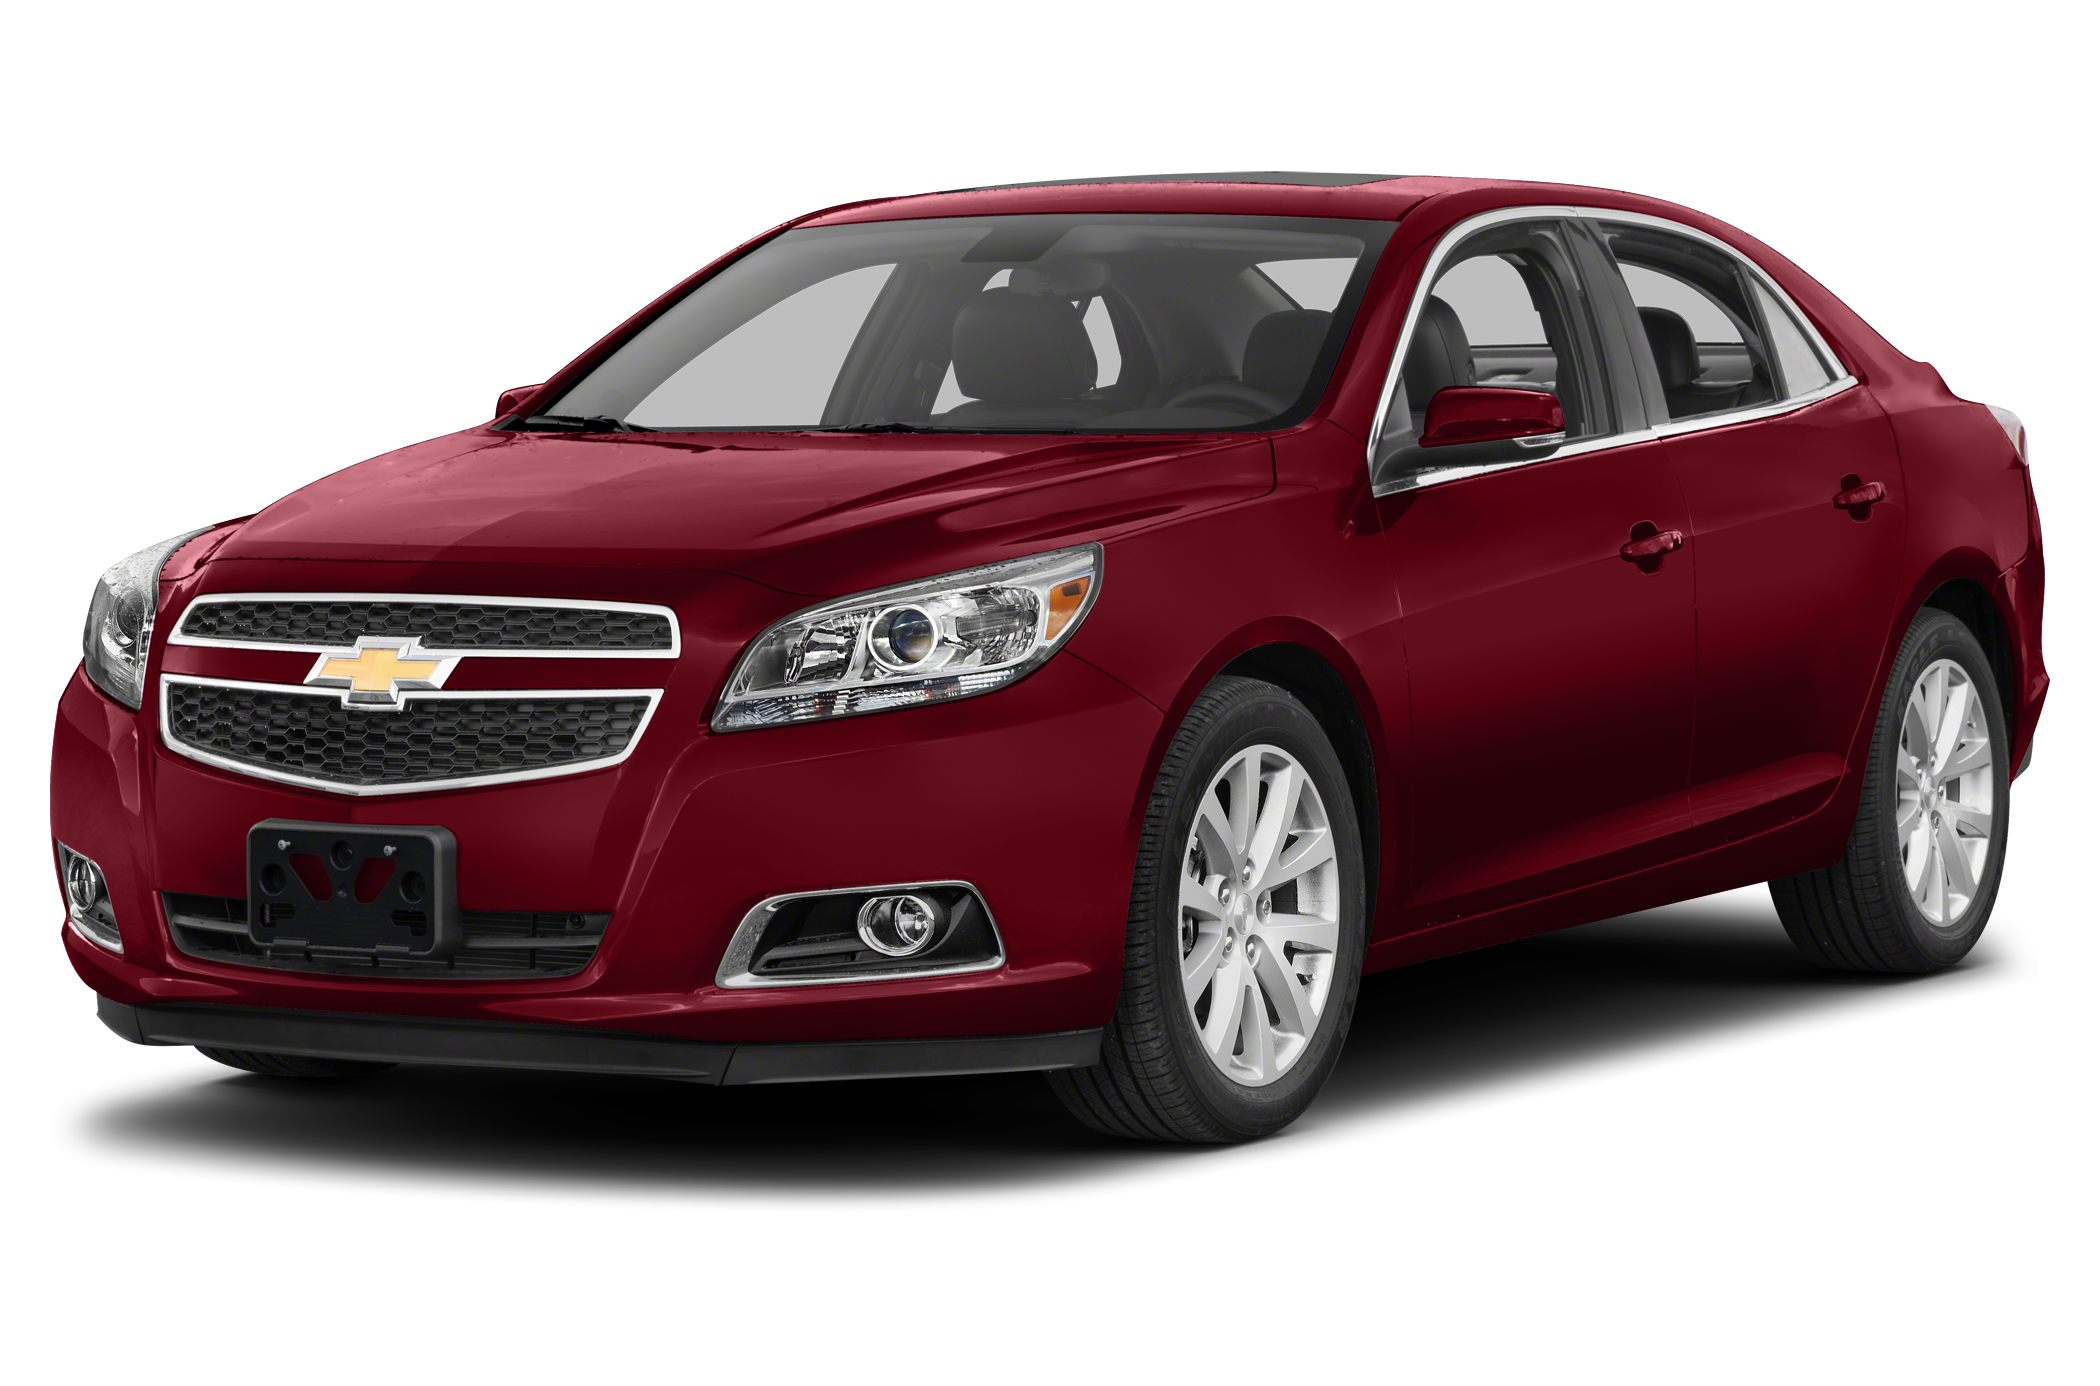 2013 Chevrolet Malibu 1LT Sedan for sale in Waterford for $16,947 with 19,173 miles.